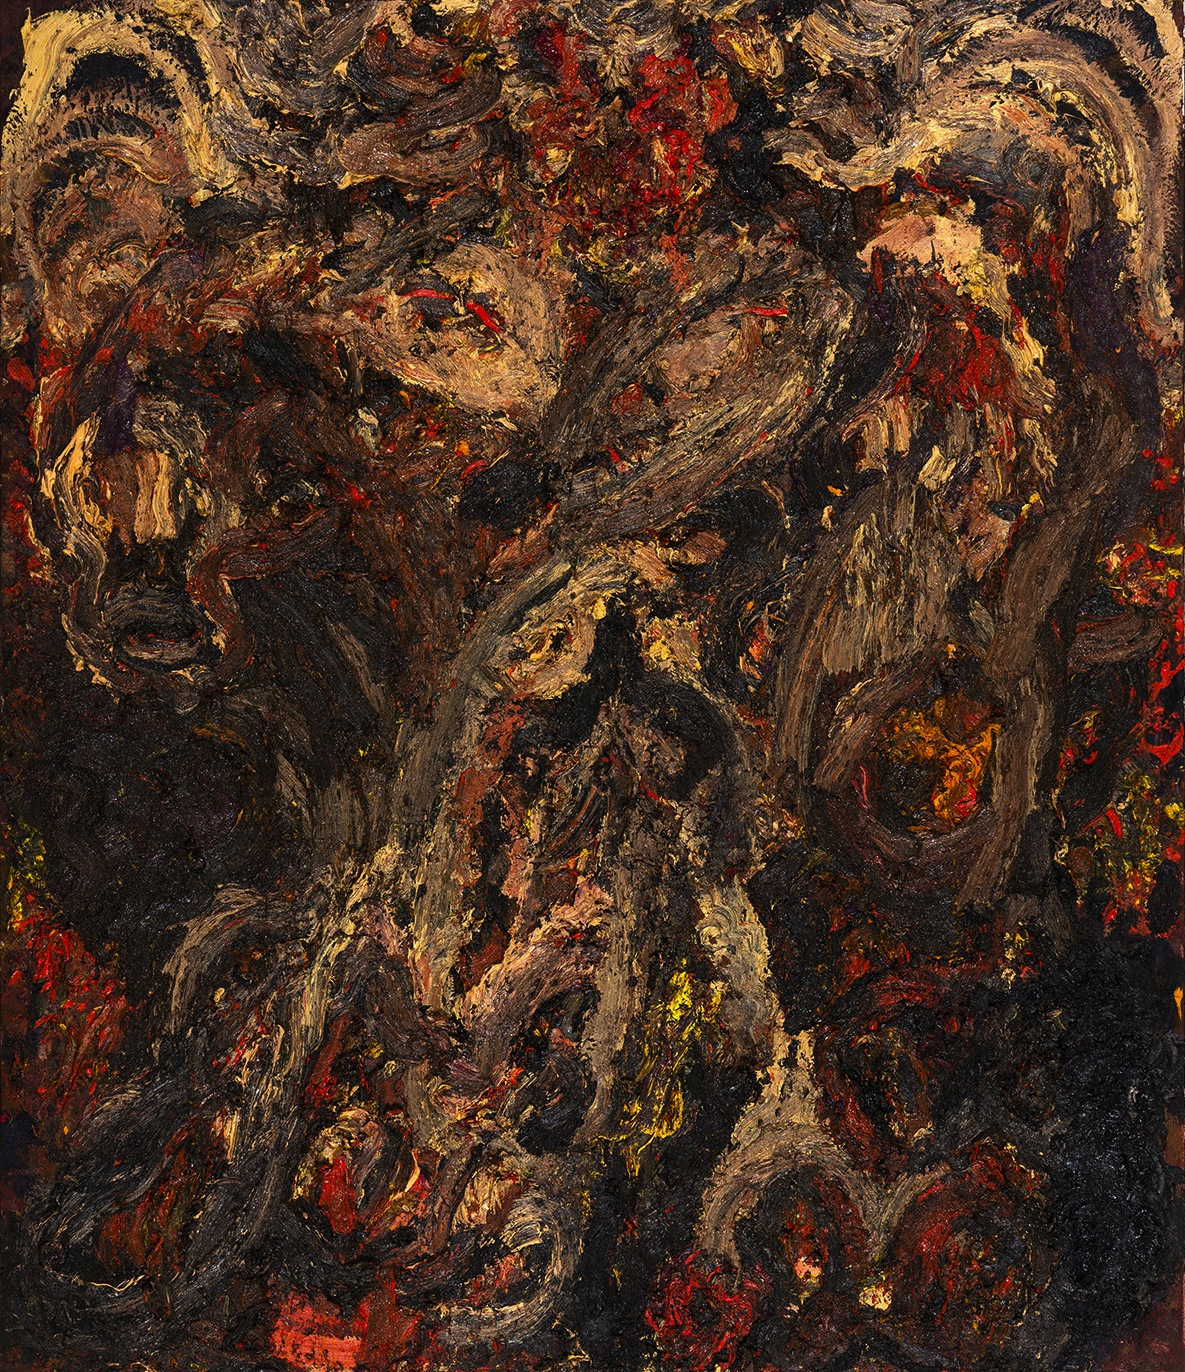 Cyberdemon, 2016 Oil on canvas 245 x 210 cm